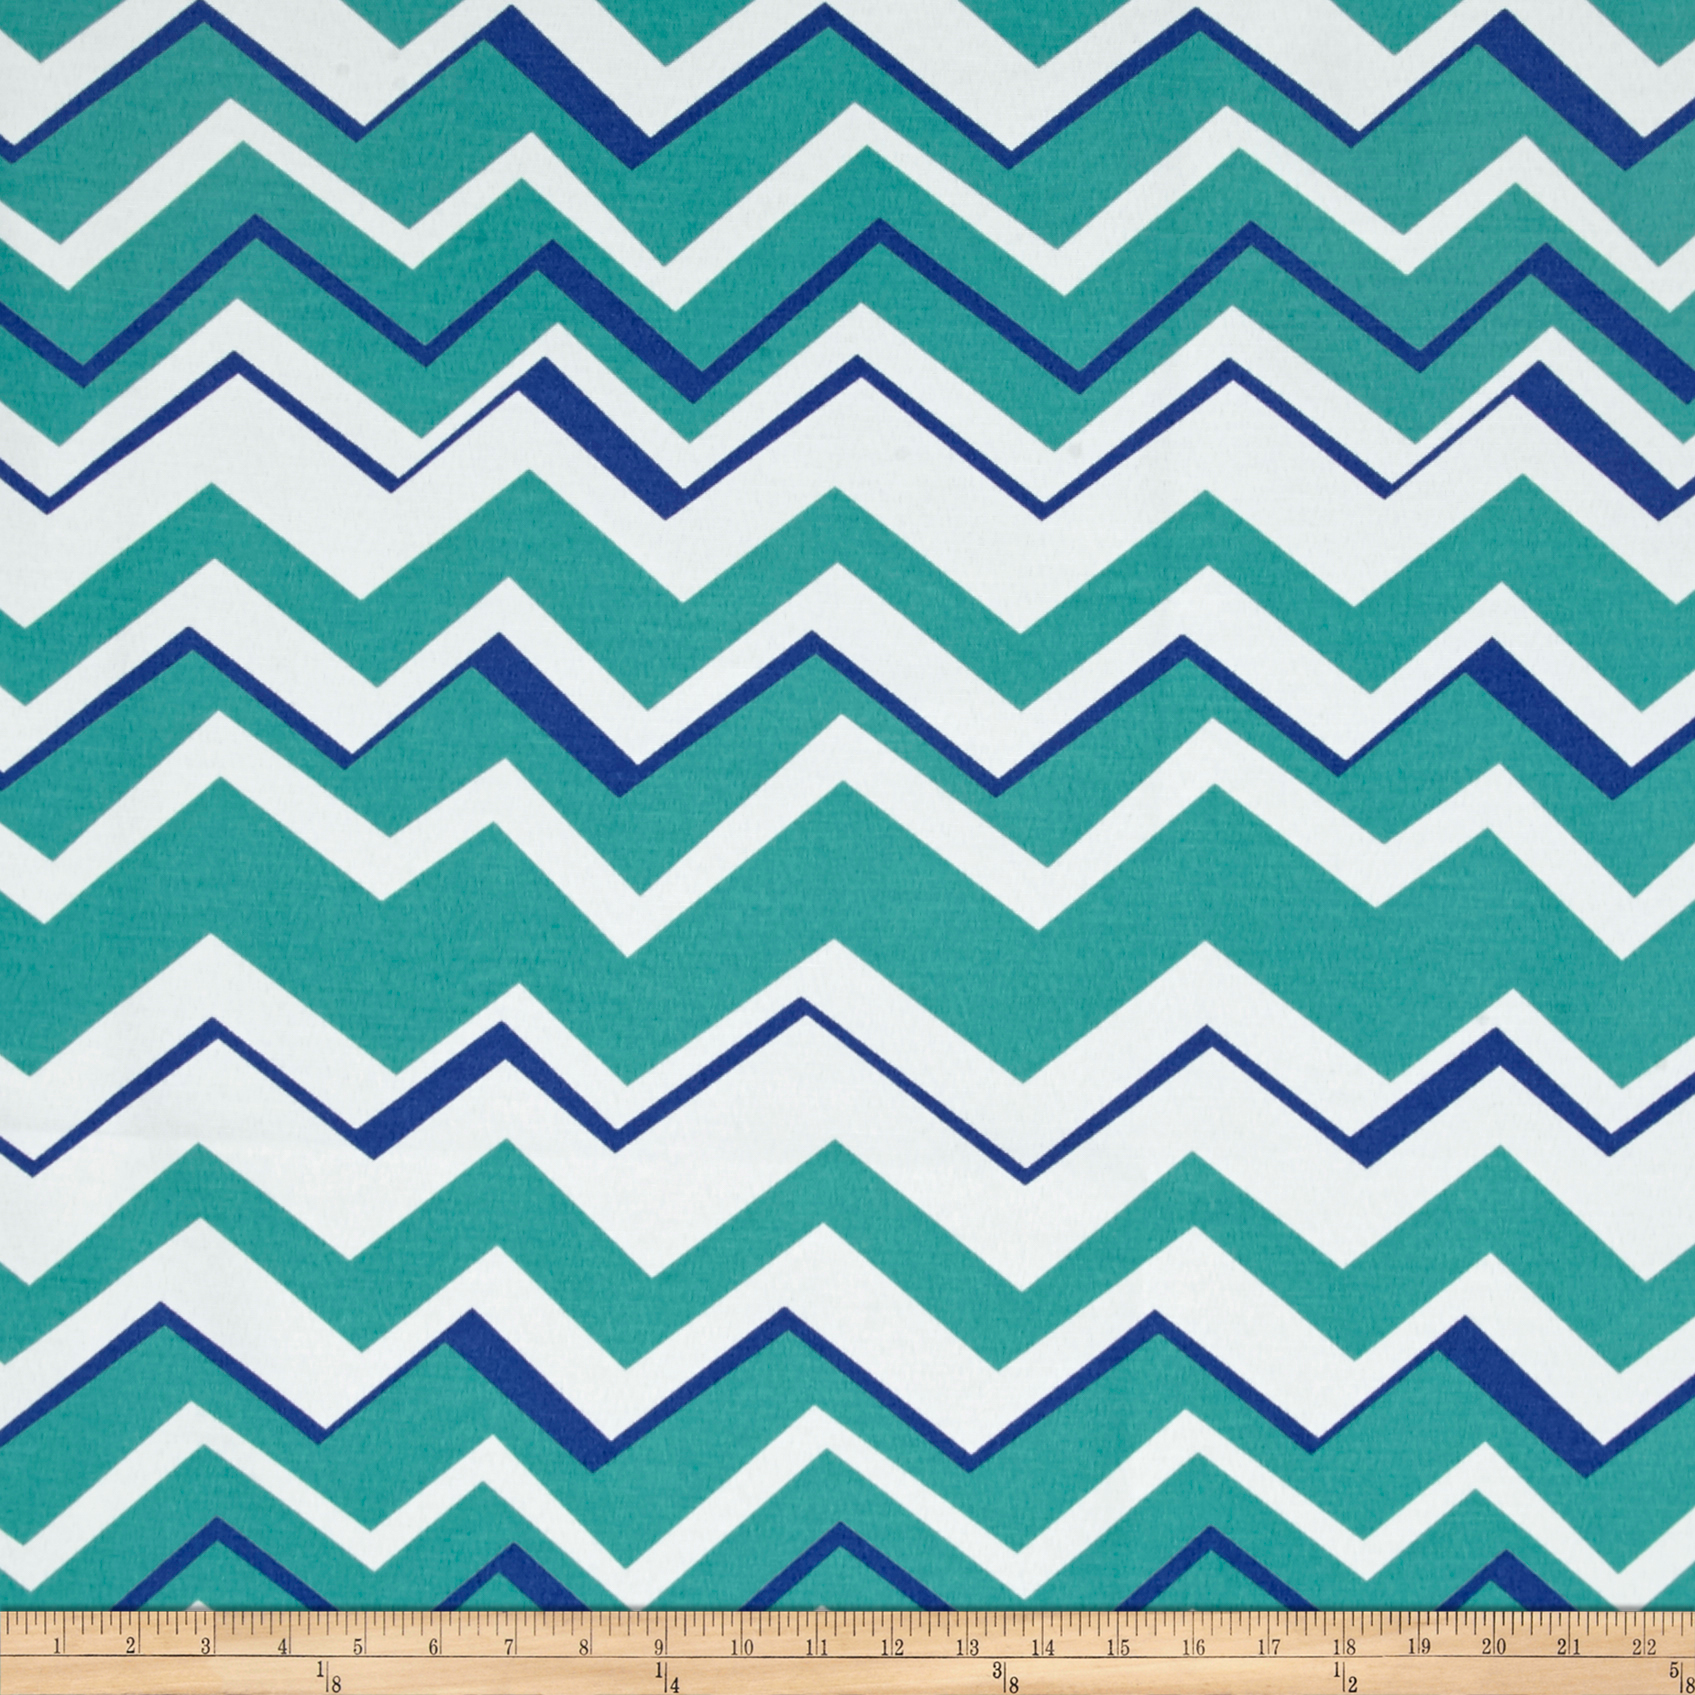 Richloom Indoor/Outdoor Tempest Aqua Fabric by TNT in USA